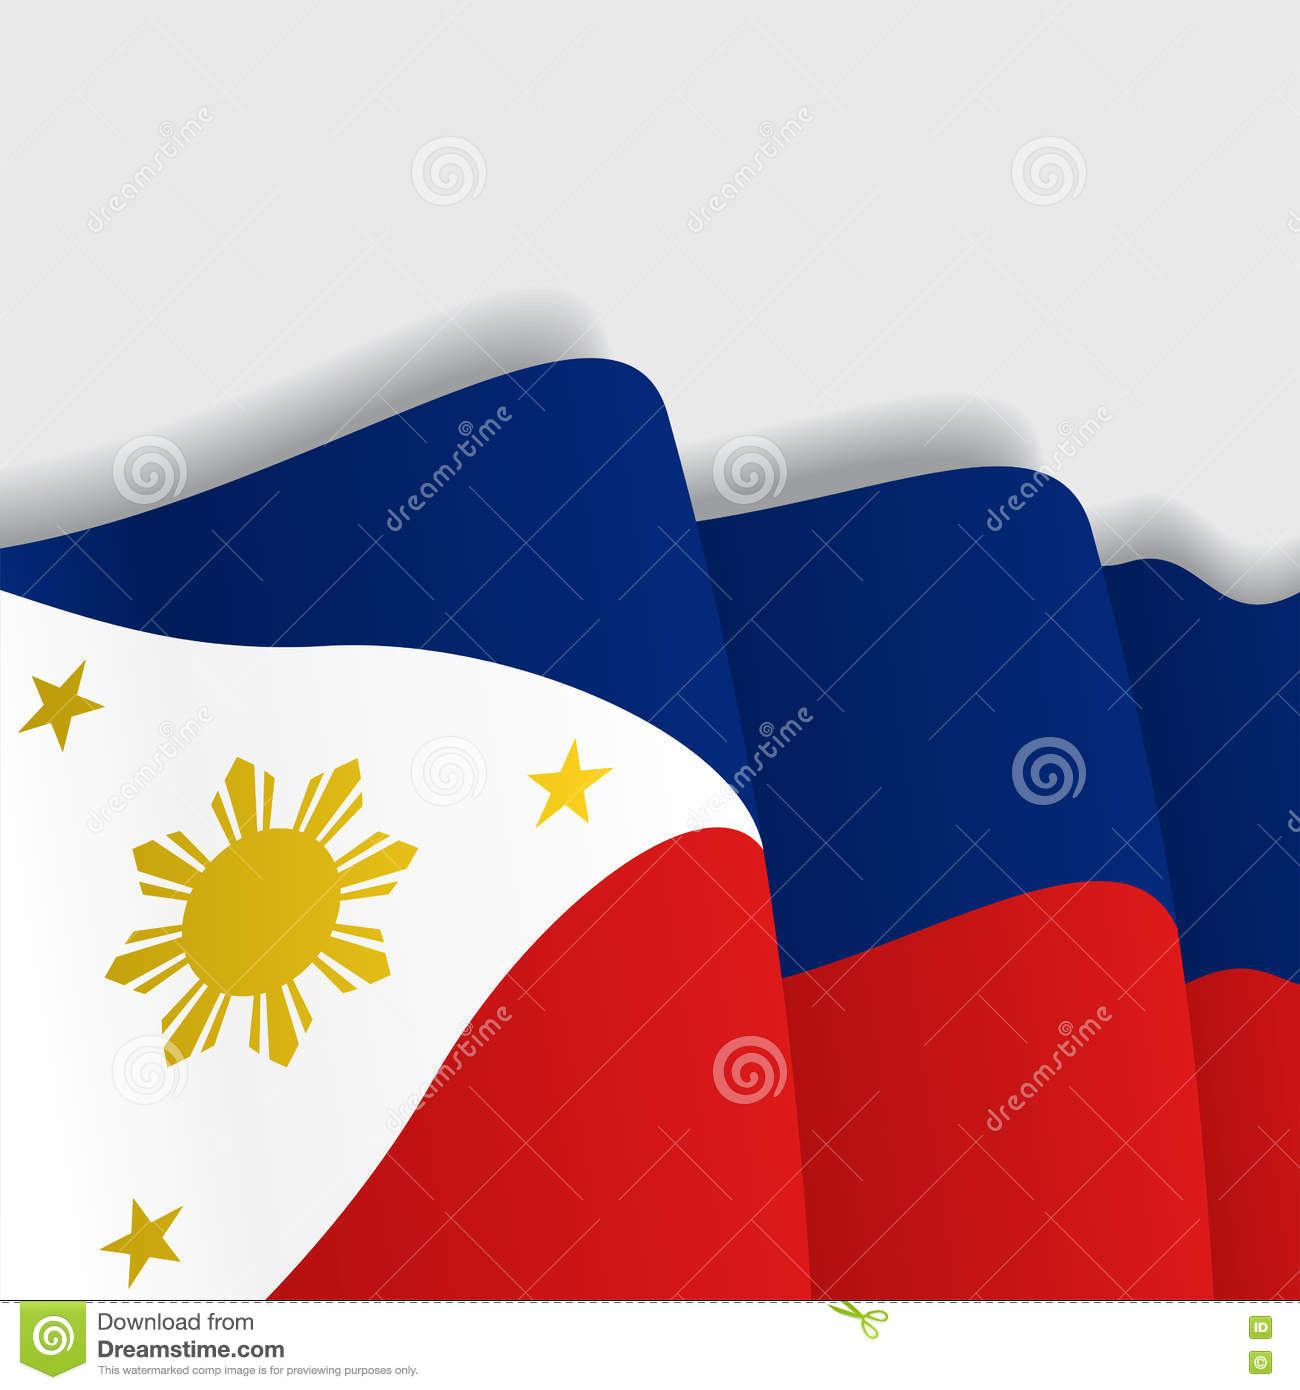 Philippines Flag Vector Waving Wind Stock Illustrations 176 Philippines Flag Vector Waving Wind Stock Illustrations Vectors Clipart Dreamstime All files were hand drawn in illustrator and are high quality. dreamstime com